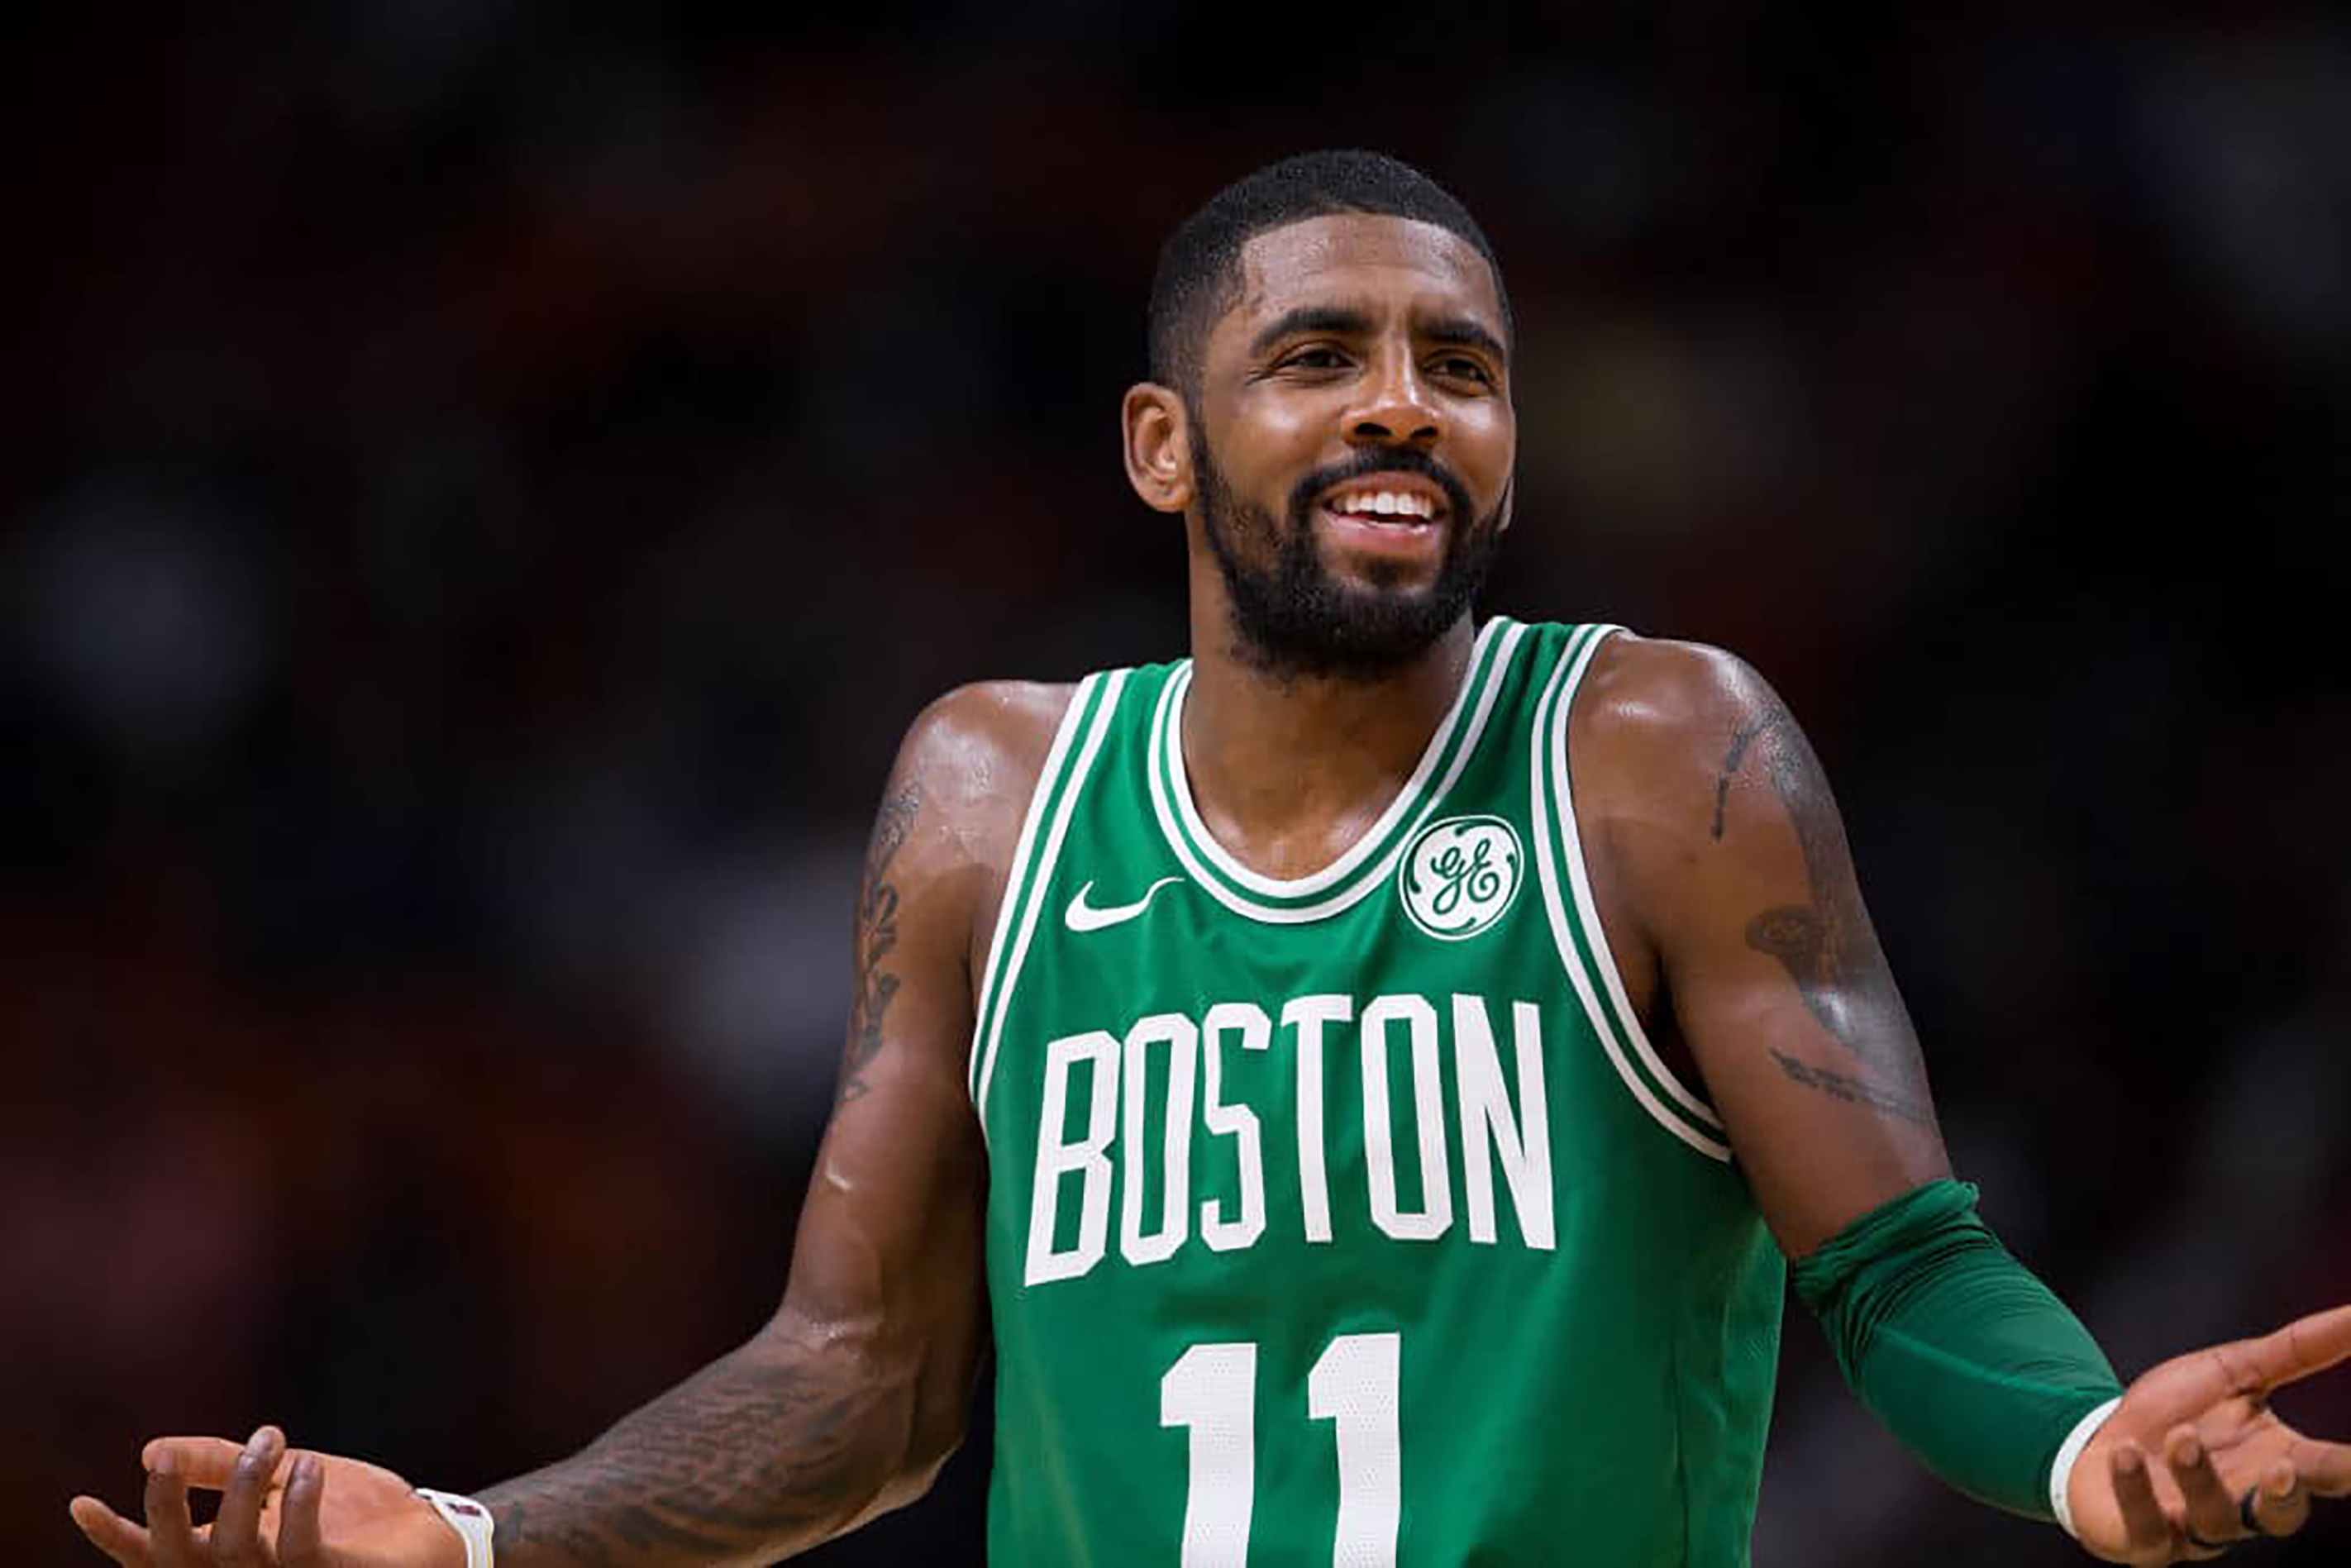 kyrie irving is taking the boston celtics